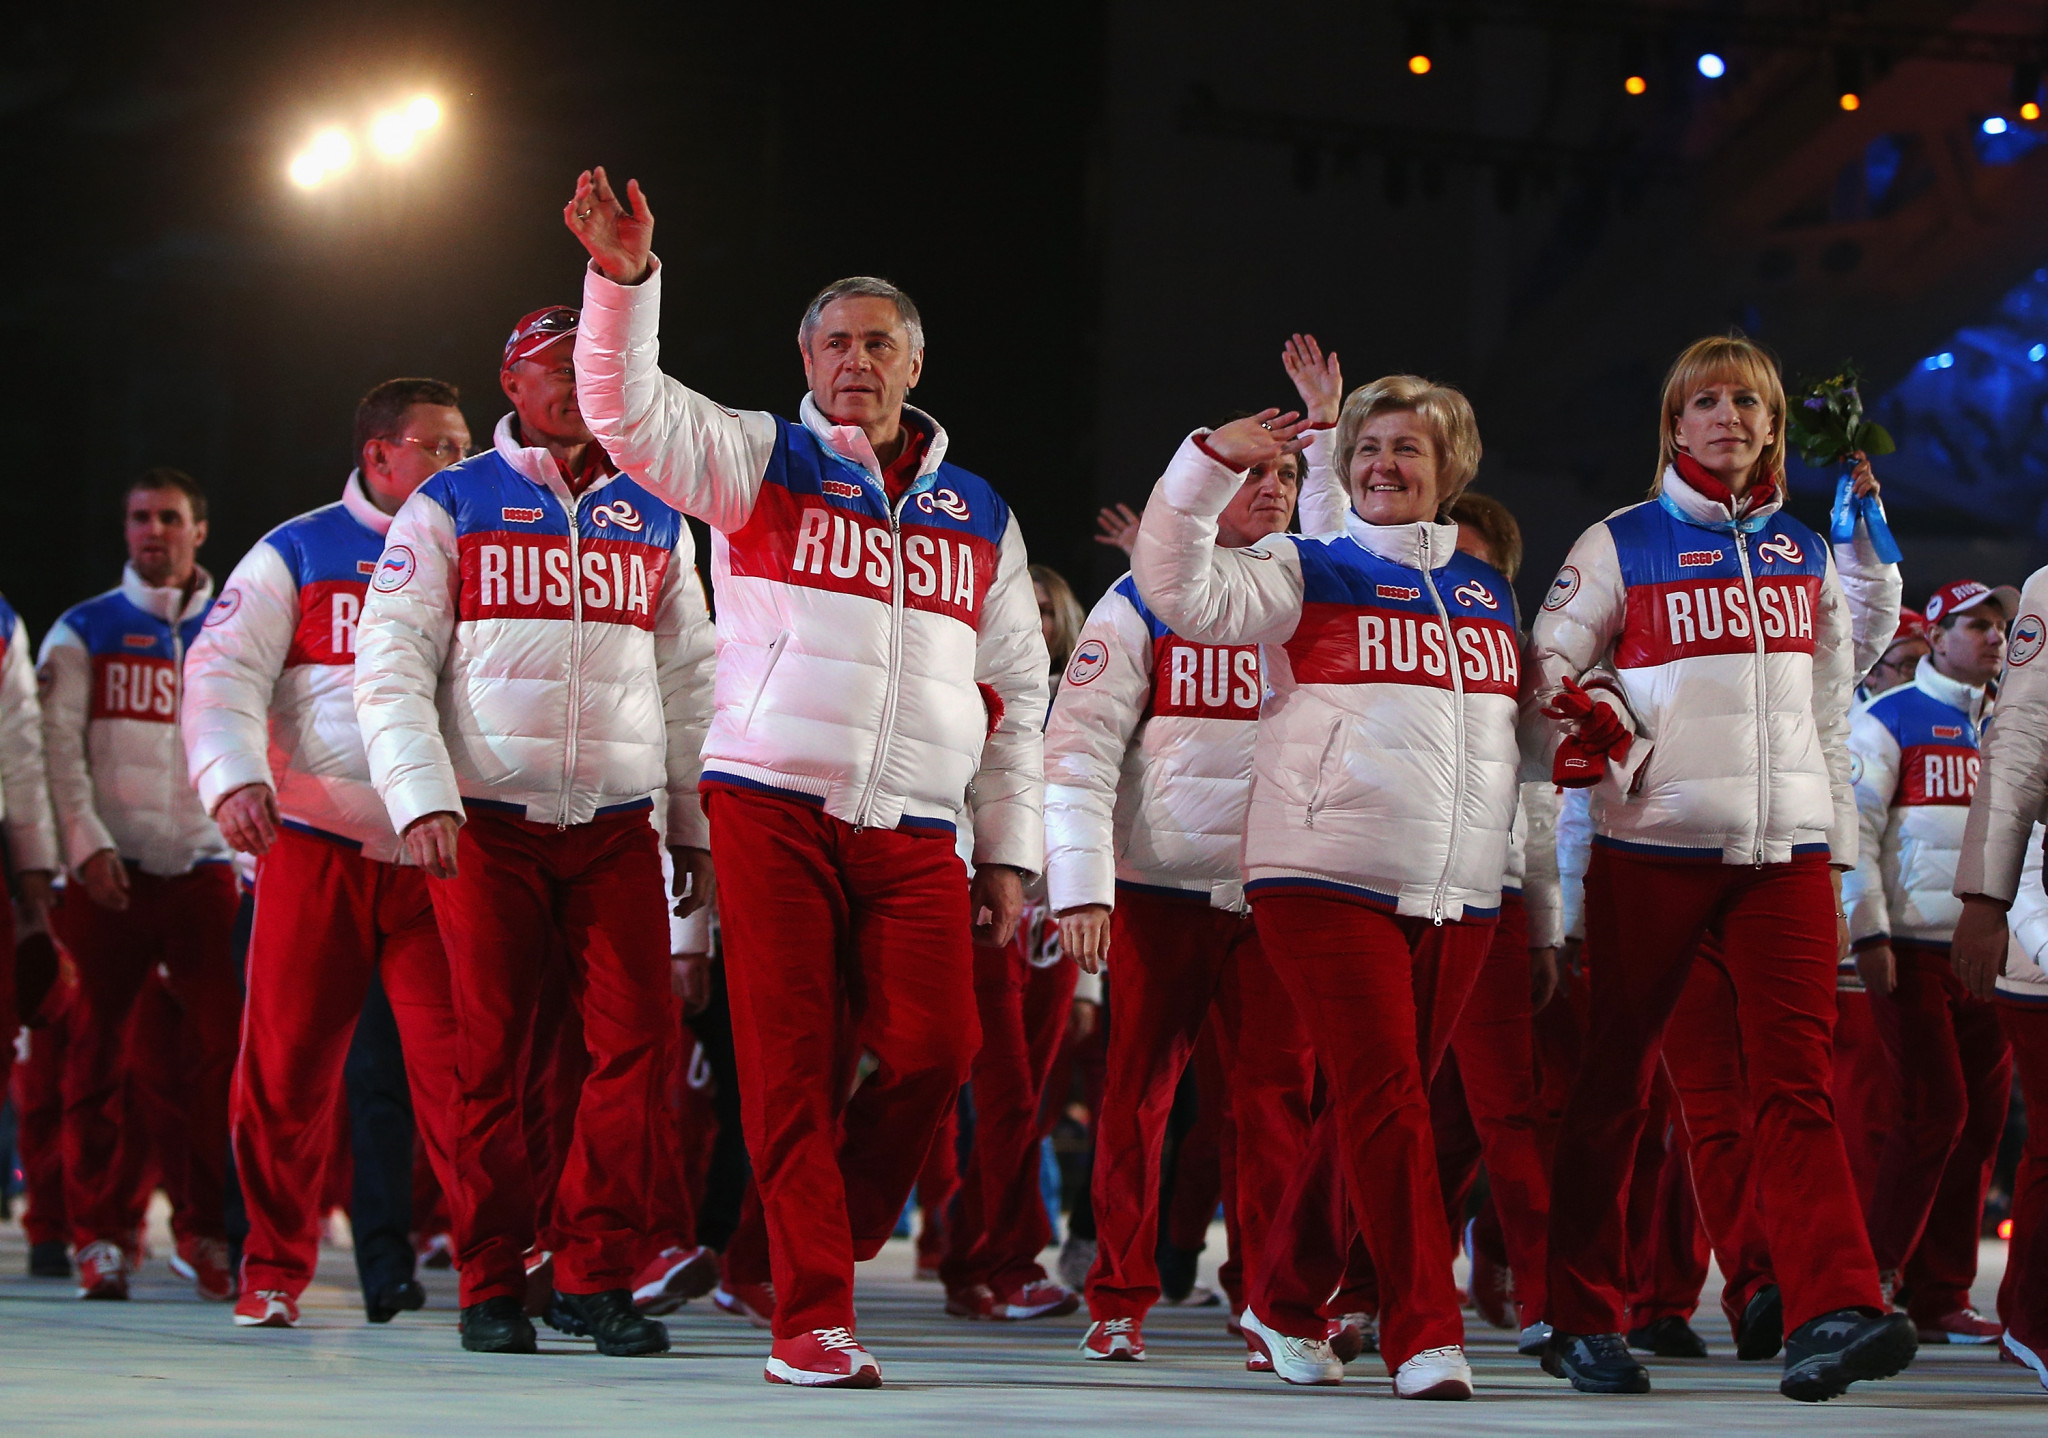 Russian athletes file suit urging IOC invitation to Olympic